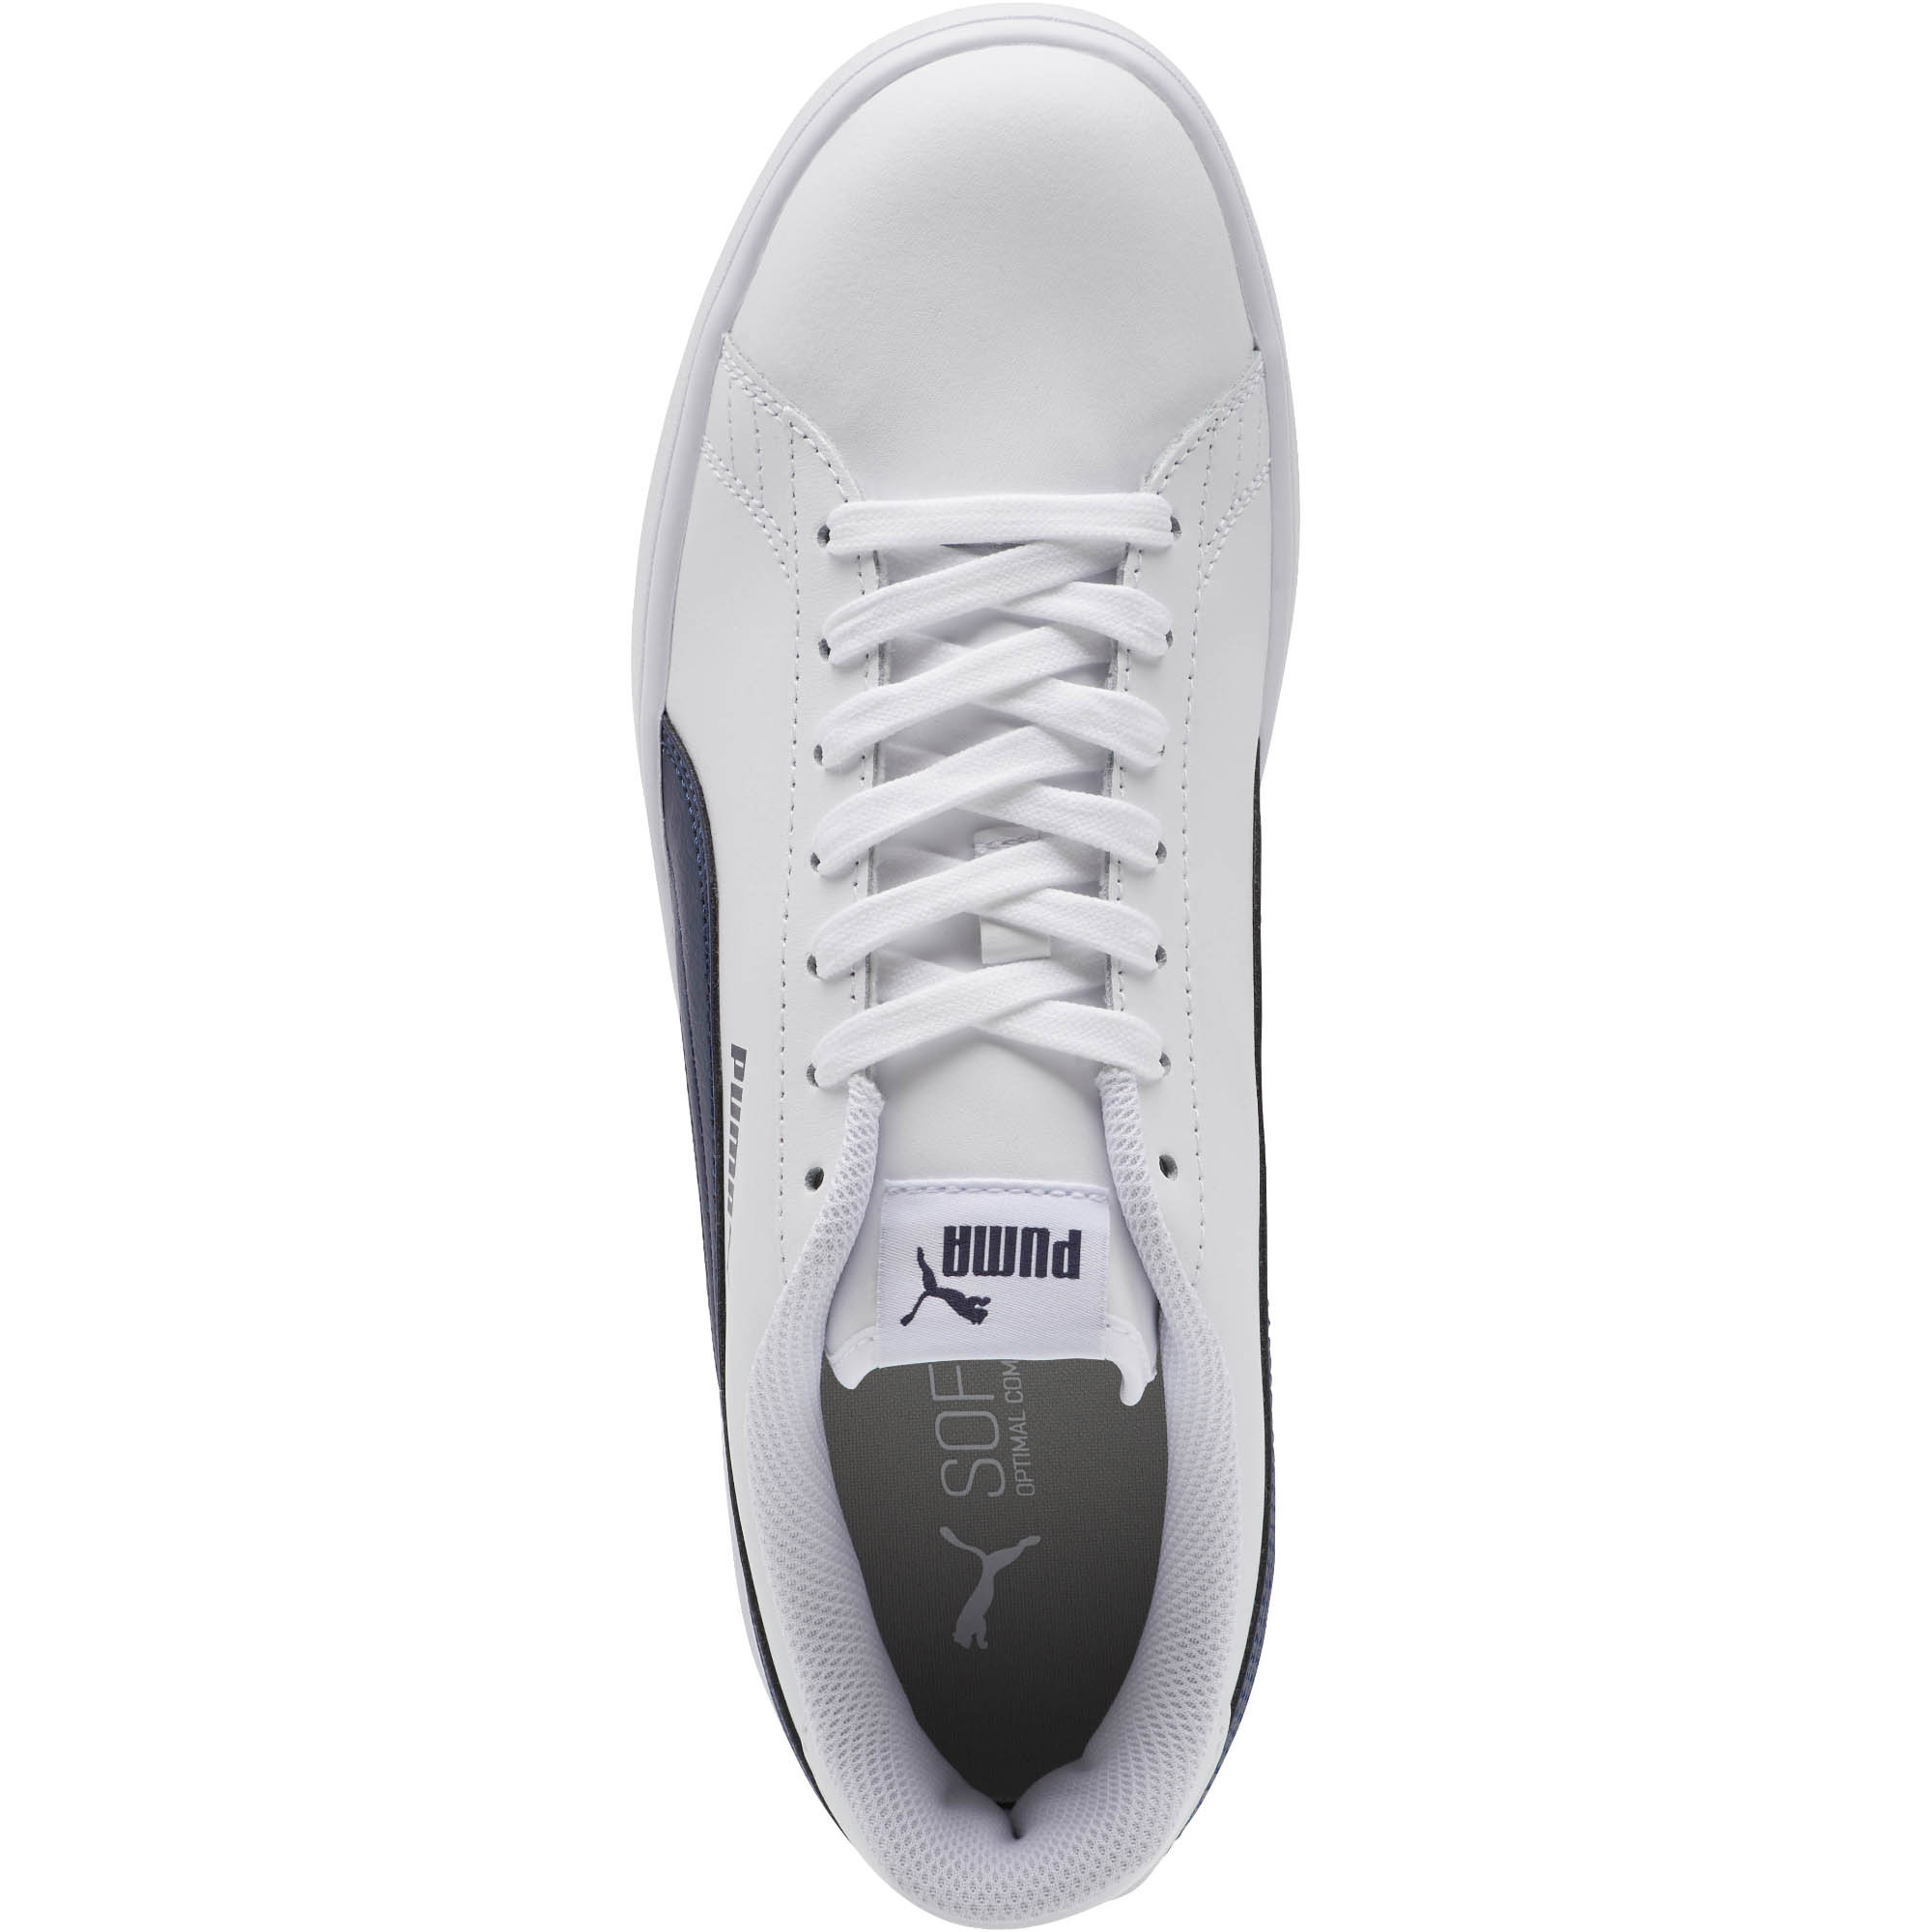 PUMA-PUMA-Smash-v2-Men-039-s-Sneakers-Men-Shoe-Basics thumbnail 16